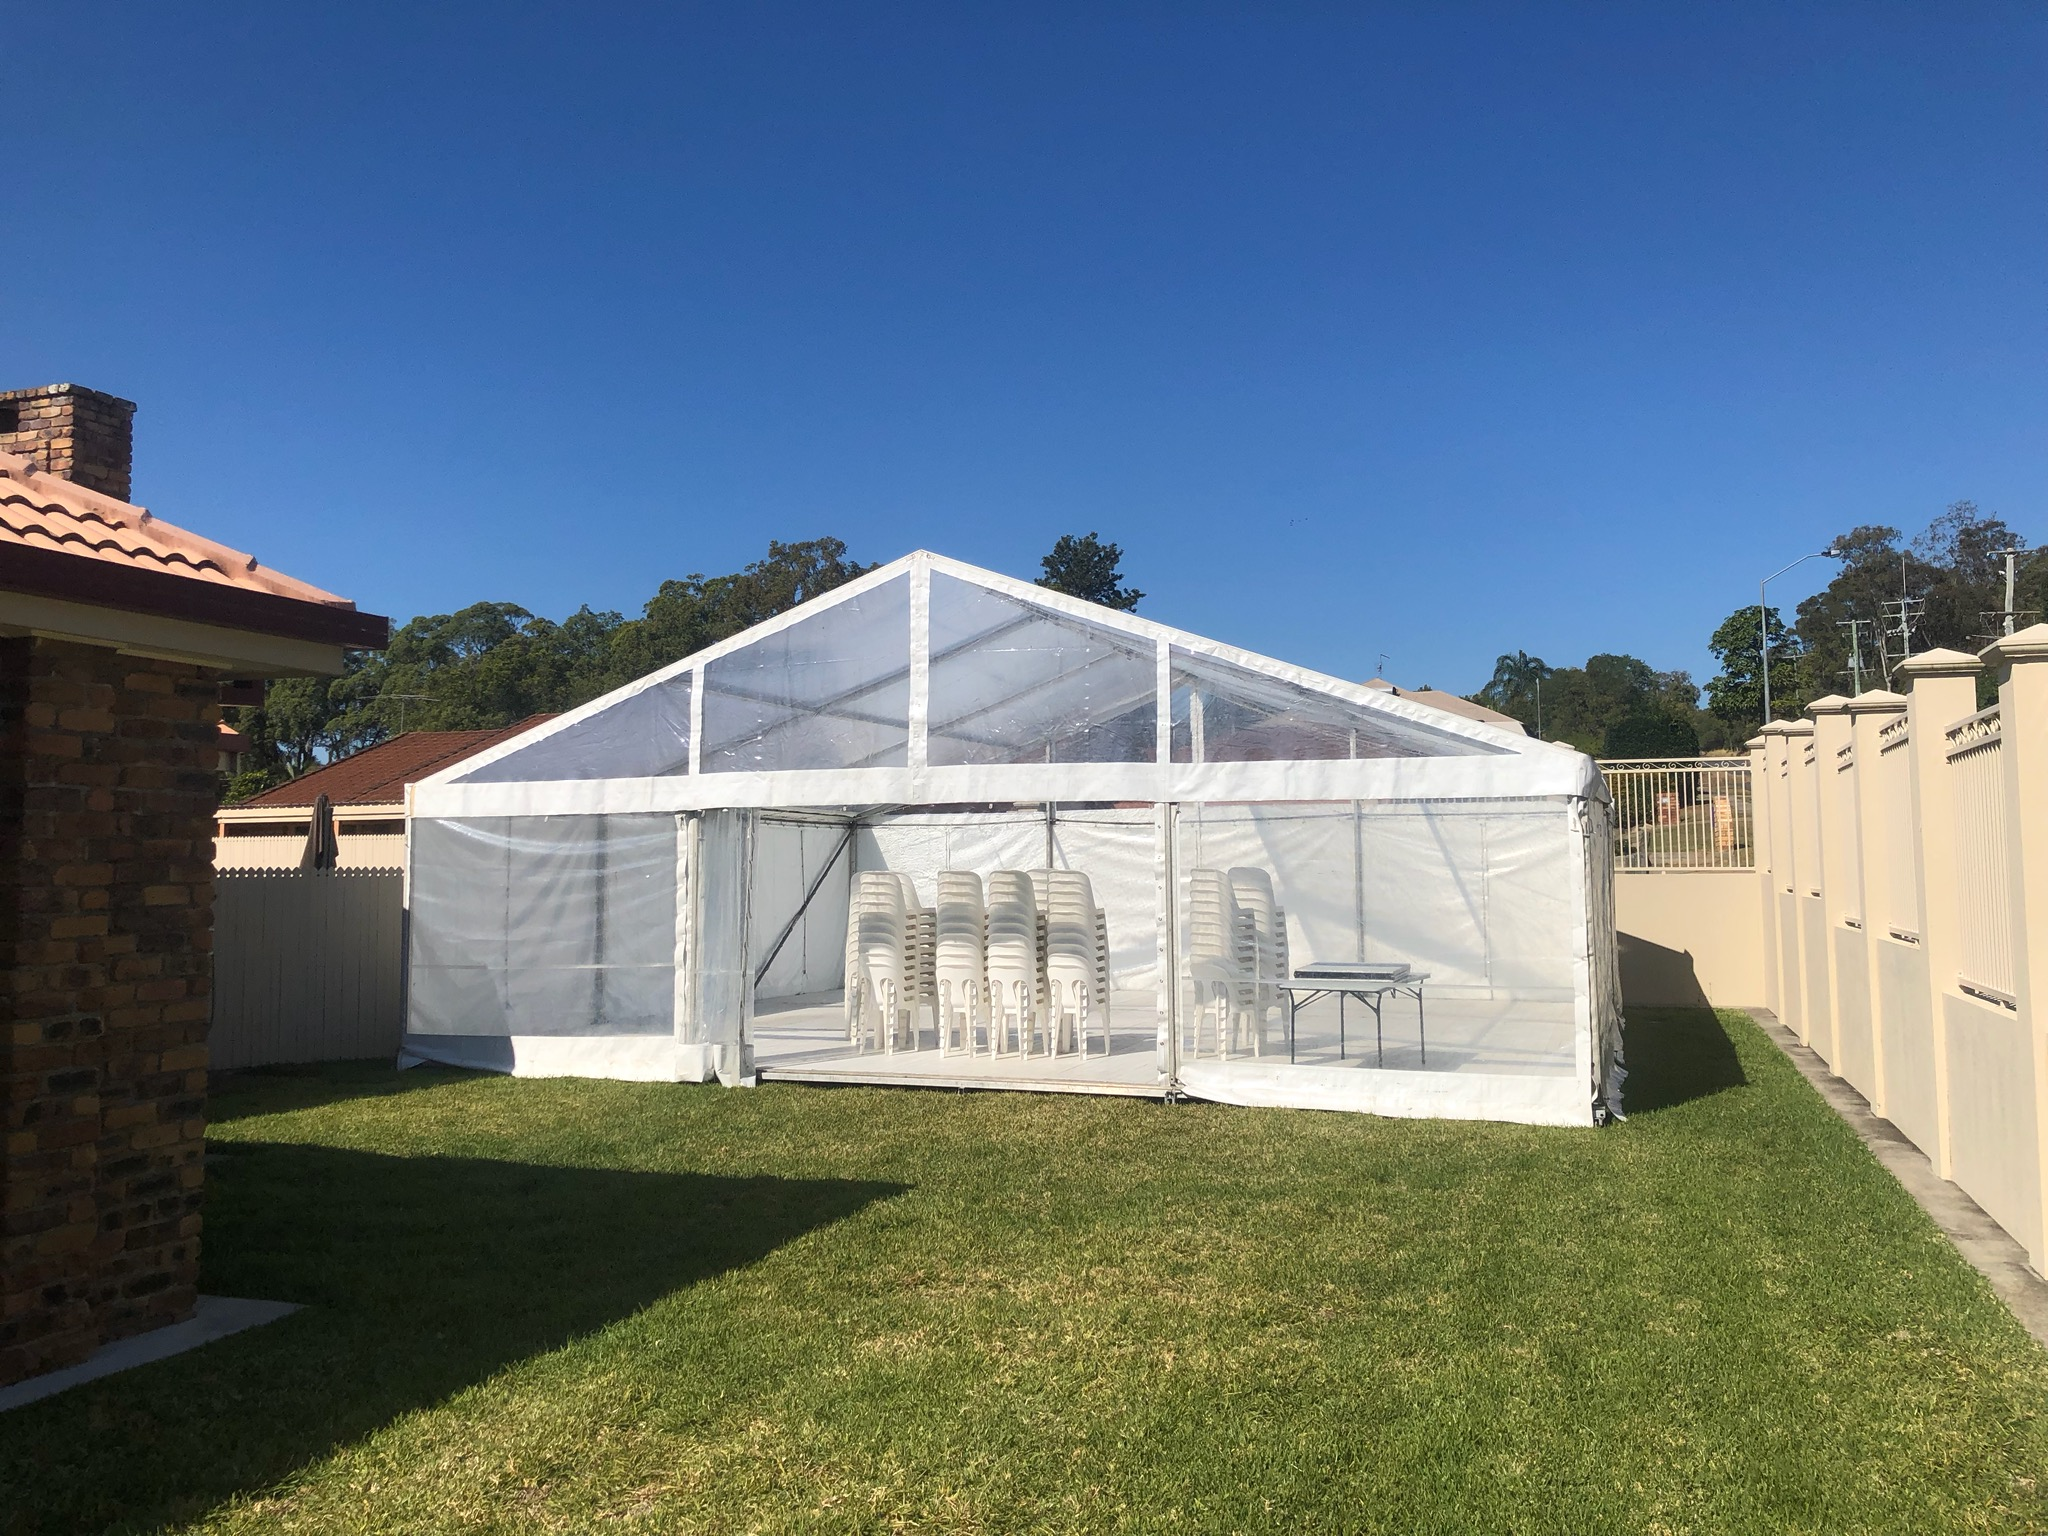 10 x 9m Clear Roof, white walls